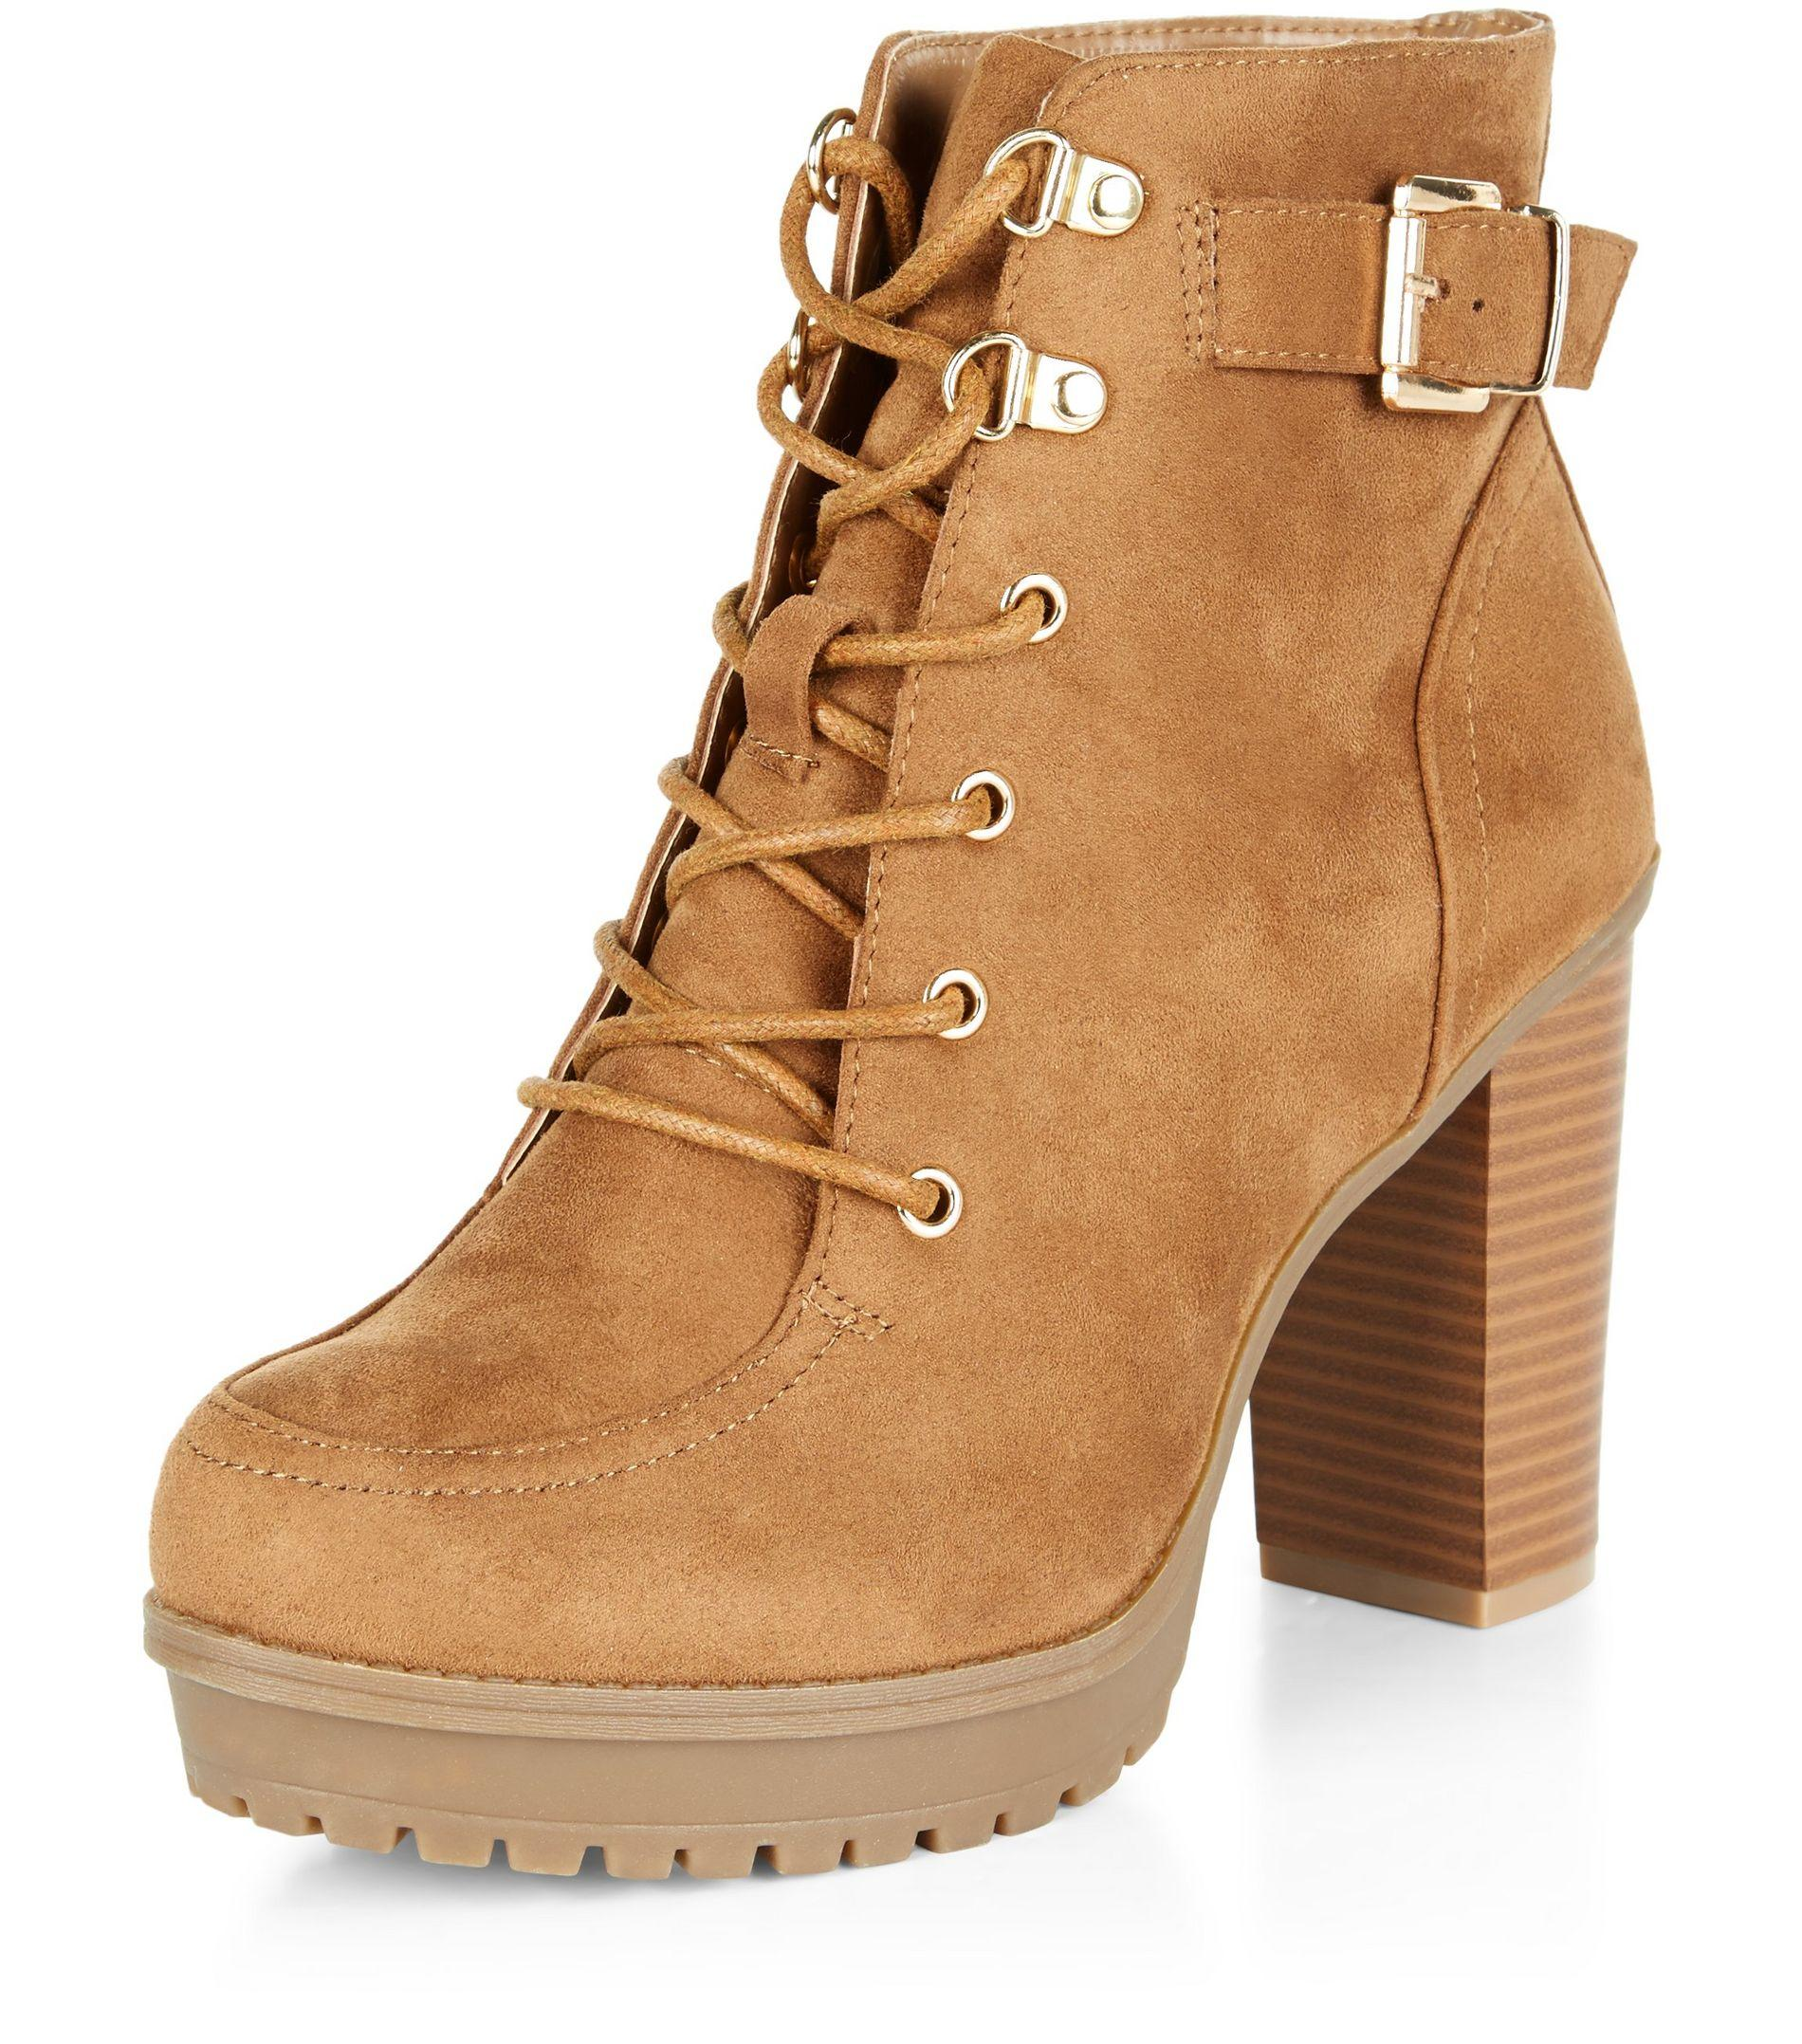 e64b0d31b6 New Look Wide Fit Tan Suedette Buckle Strap Lace Up Boots in Brown ...